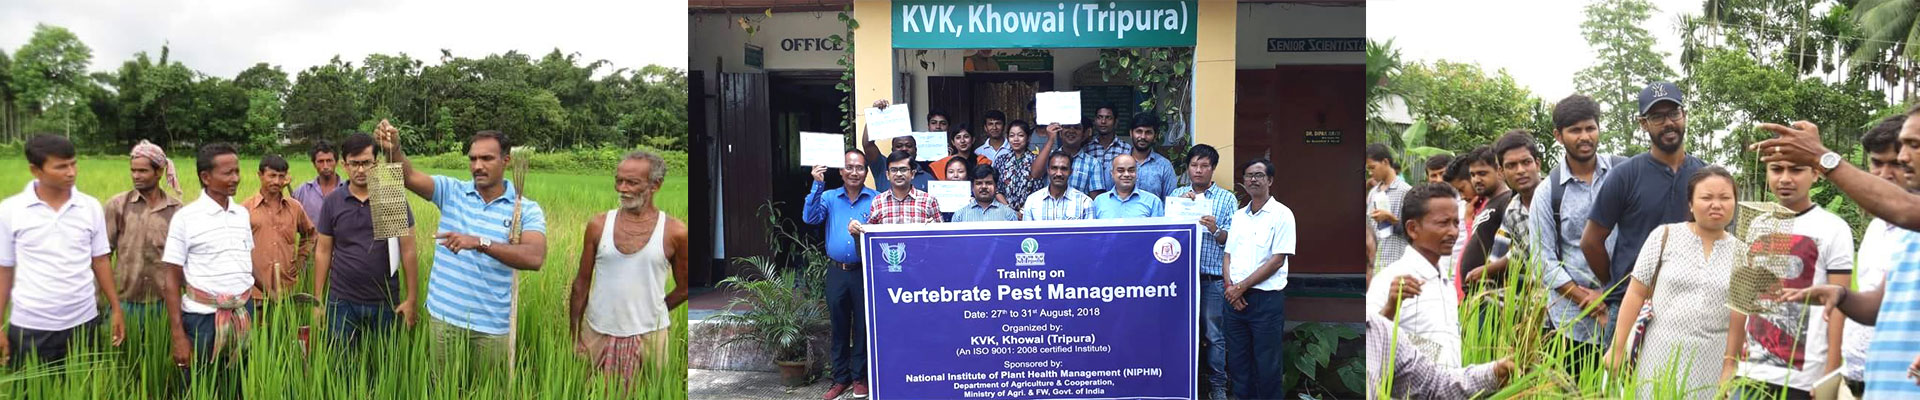 Vertebrate Pest Management Training - Tripura